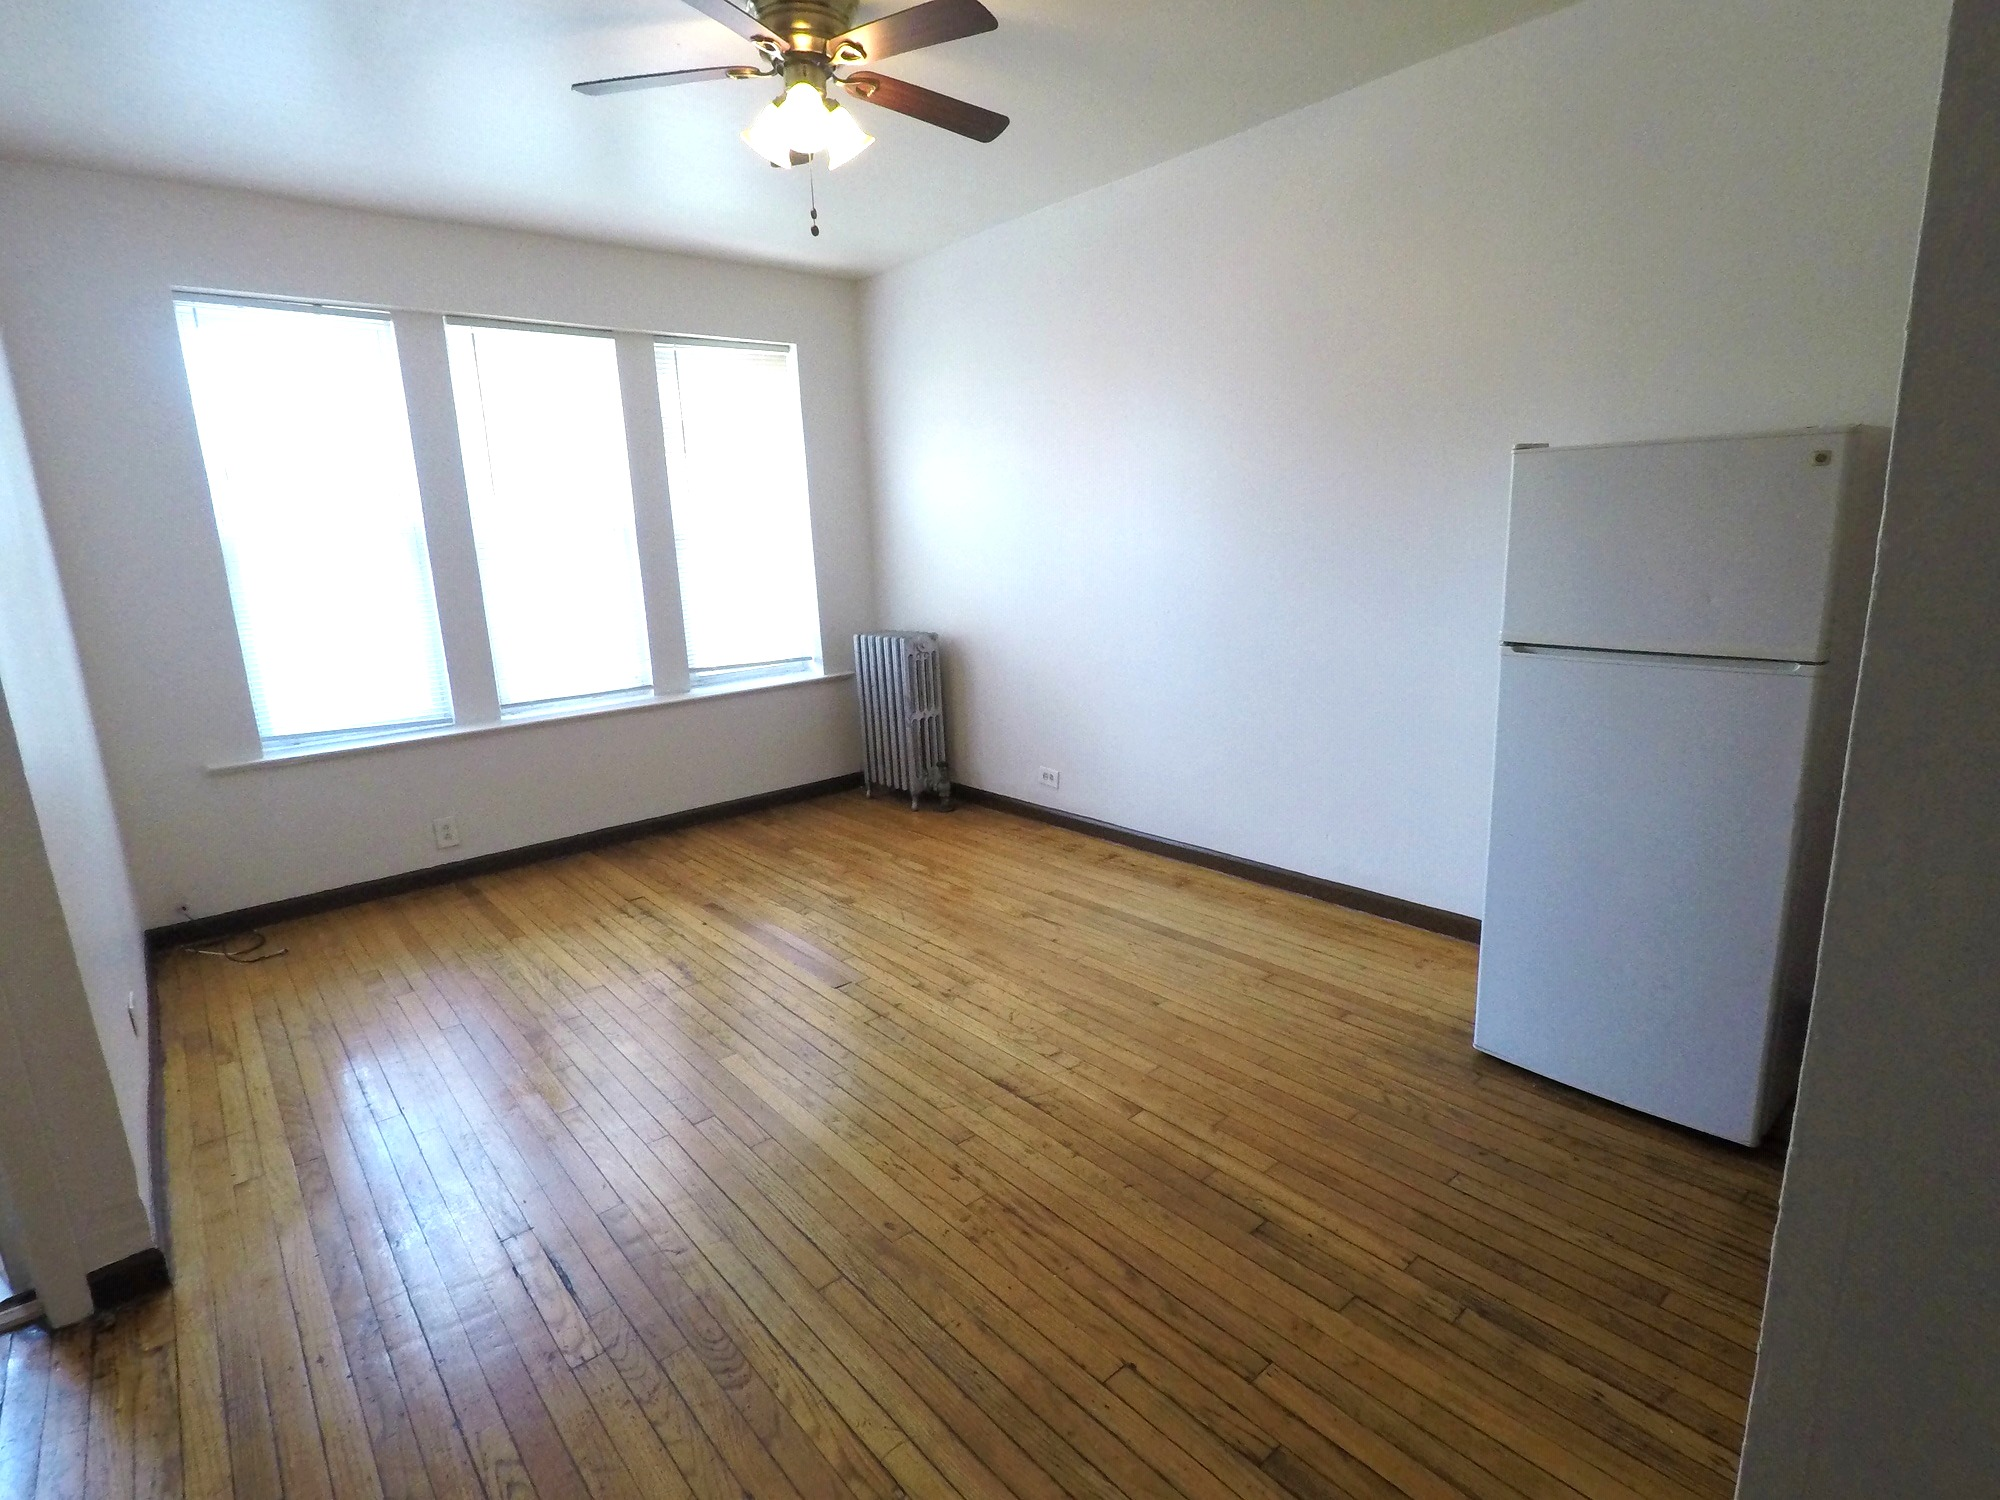 Studio apartment in Austin Chicago, 5412 W Ferdinand, Chicago IL 60644, Unit #7